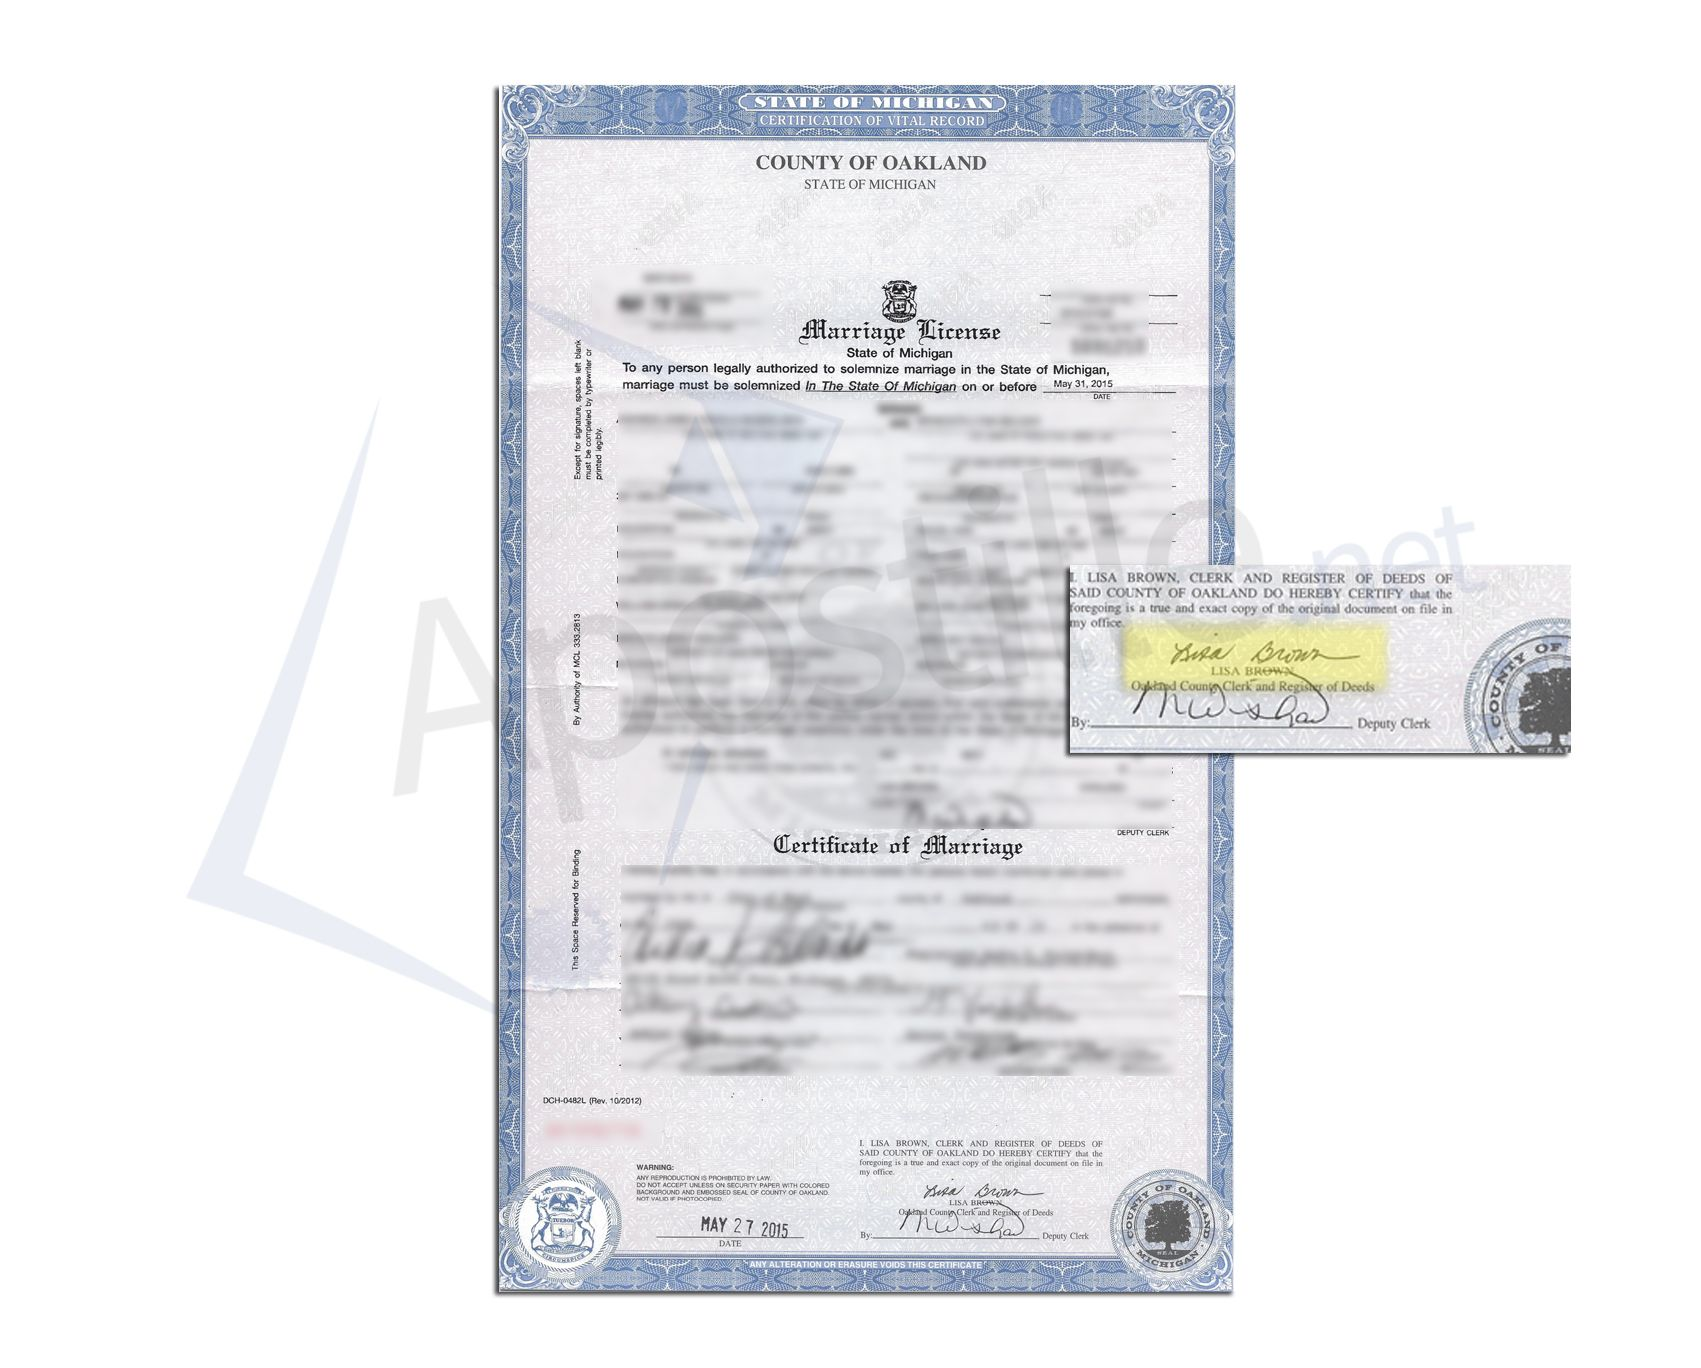 County of washtenaw state of michigan birth certificate issued by county of washtenaw state of michigan birth certificate issued by luella m smith state of michigan sample apostille pinterest birth certificate xflitez Image collections